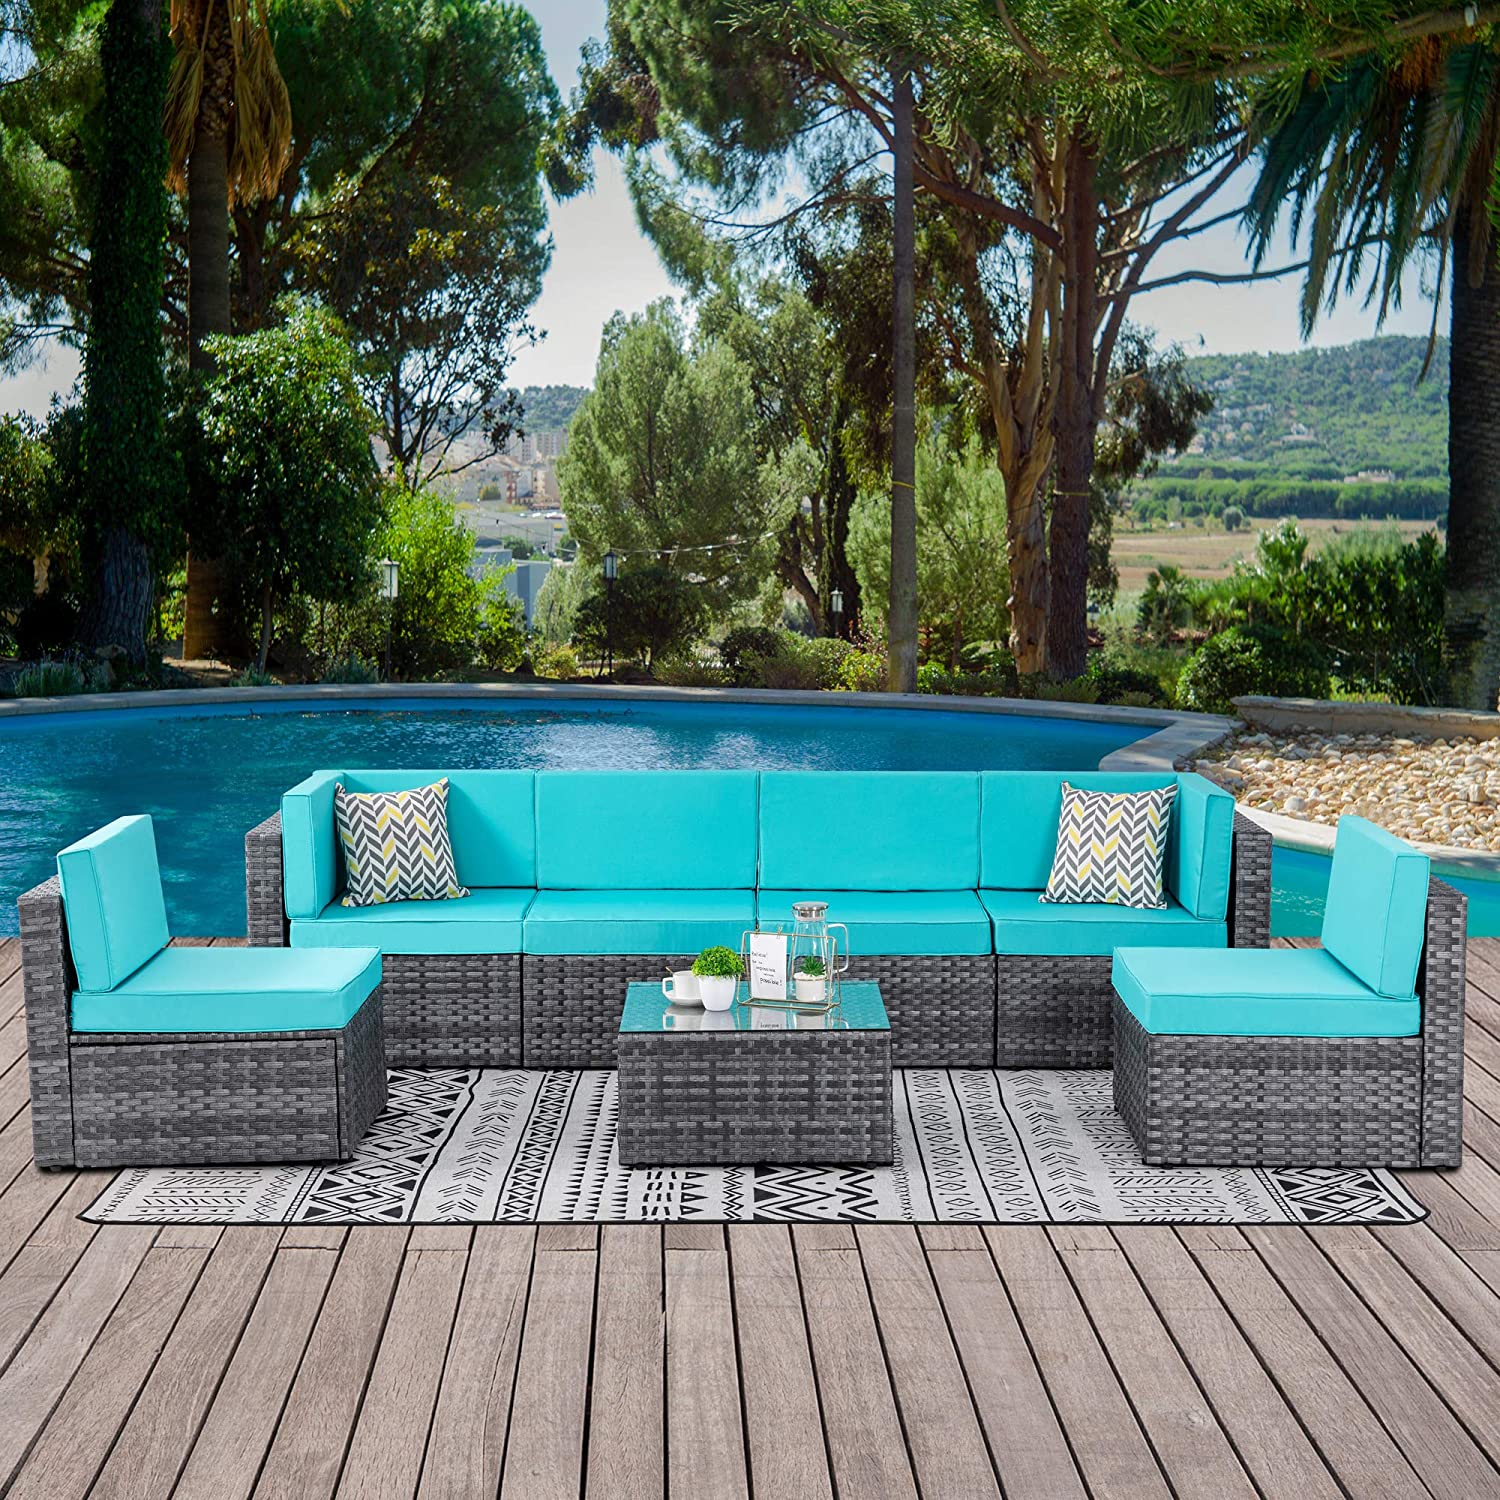 Walsunny 7 Piece Outdoor Patio Furniture Sets, PE Silver Gray Rattan Wicker Sectional Sofa Couch with Tea Table & Washable Cushions(Blue)